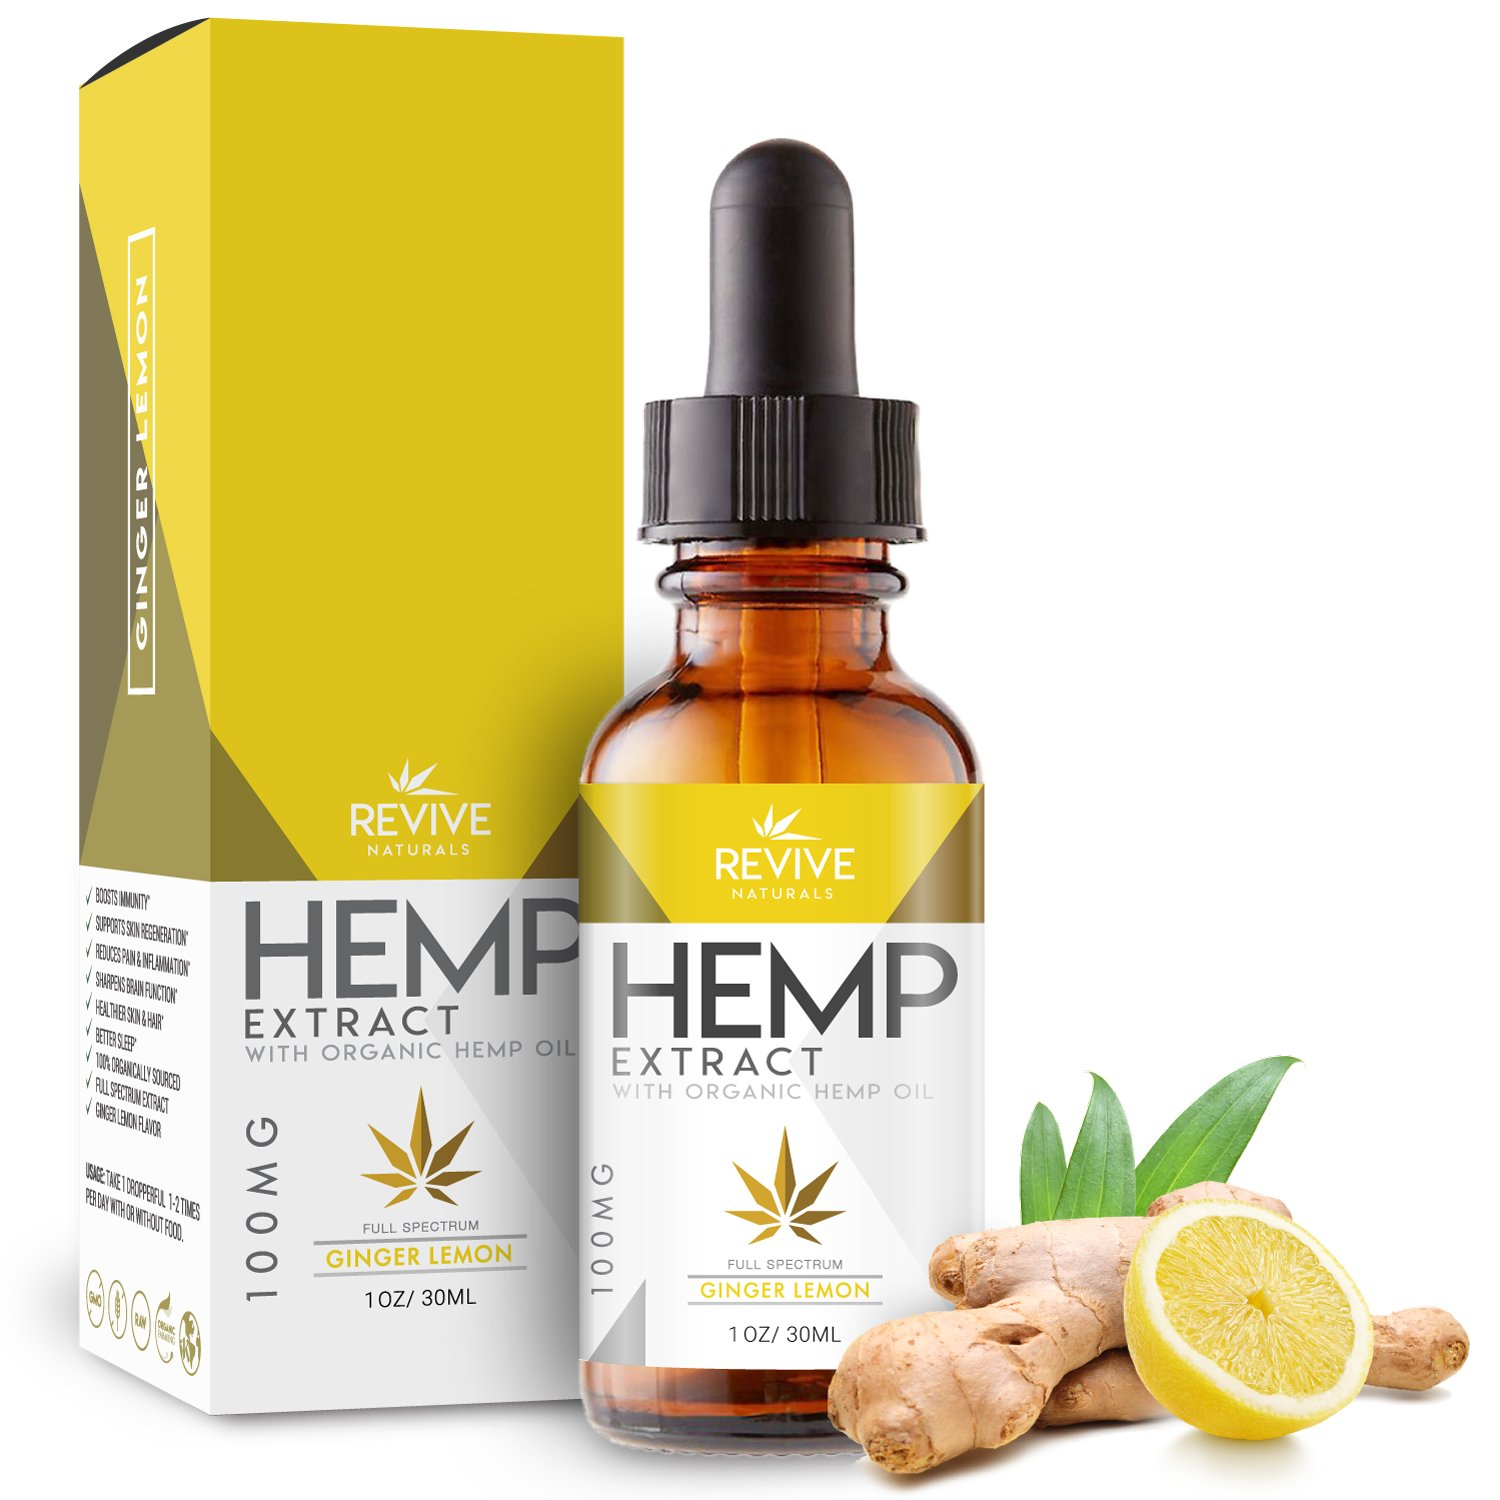 Revive Organic Raw Hemp Extract for Better Sleep (100MG), Ginger Lemon Flavor, Blended with Organic Hemp Seed Oil for Optimal Absorption, Lab Tested, GMP Certified, Kosher, Raw, Gluten Free, 1oz